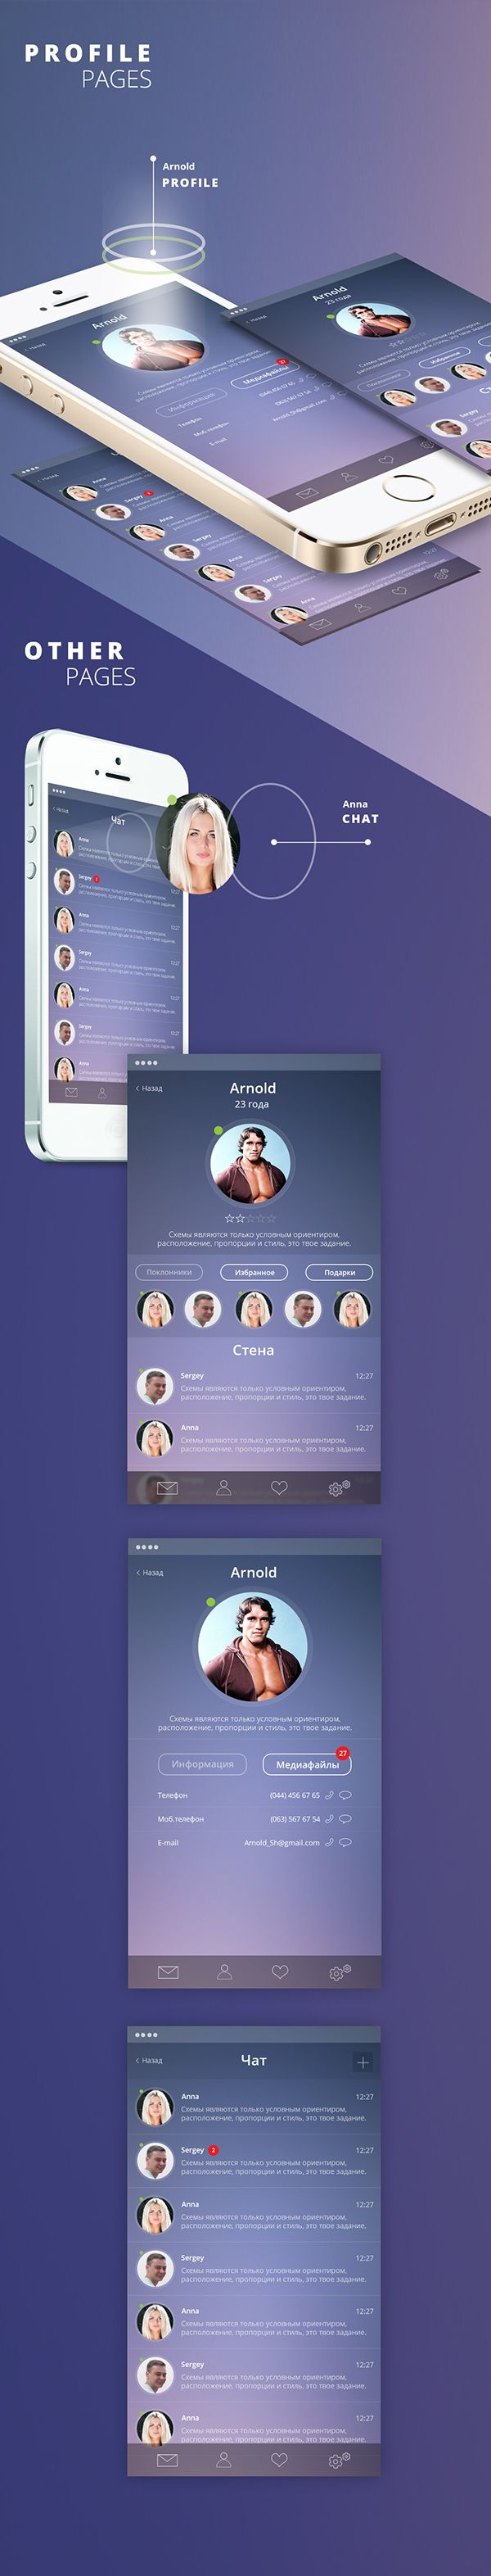 application on Behance